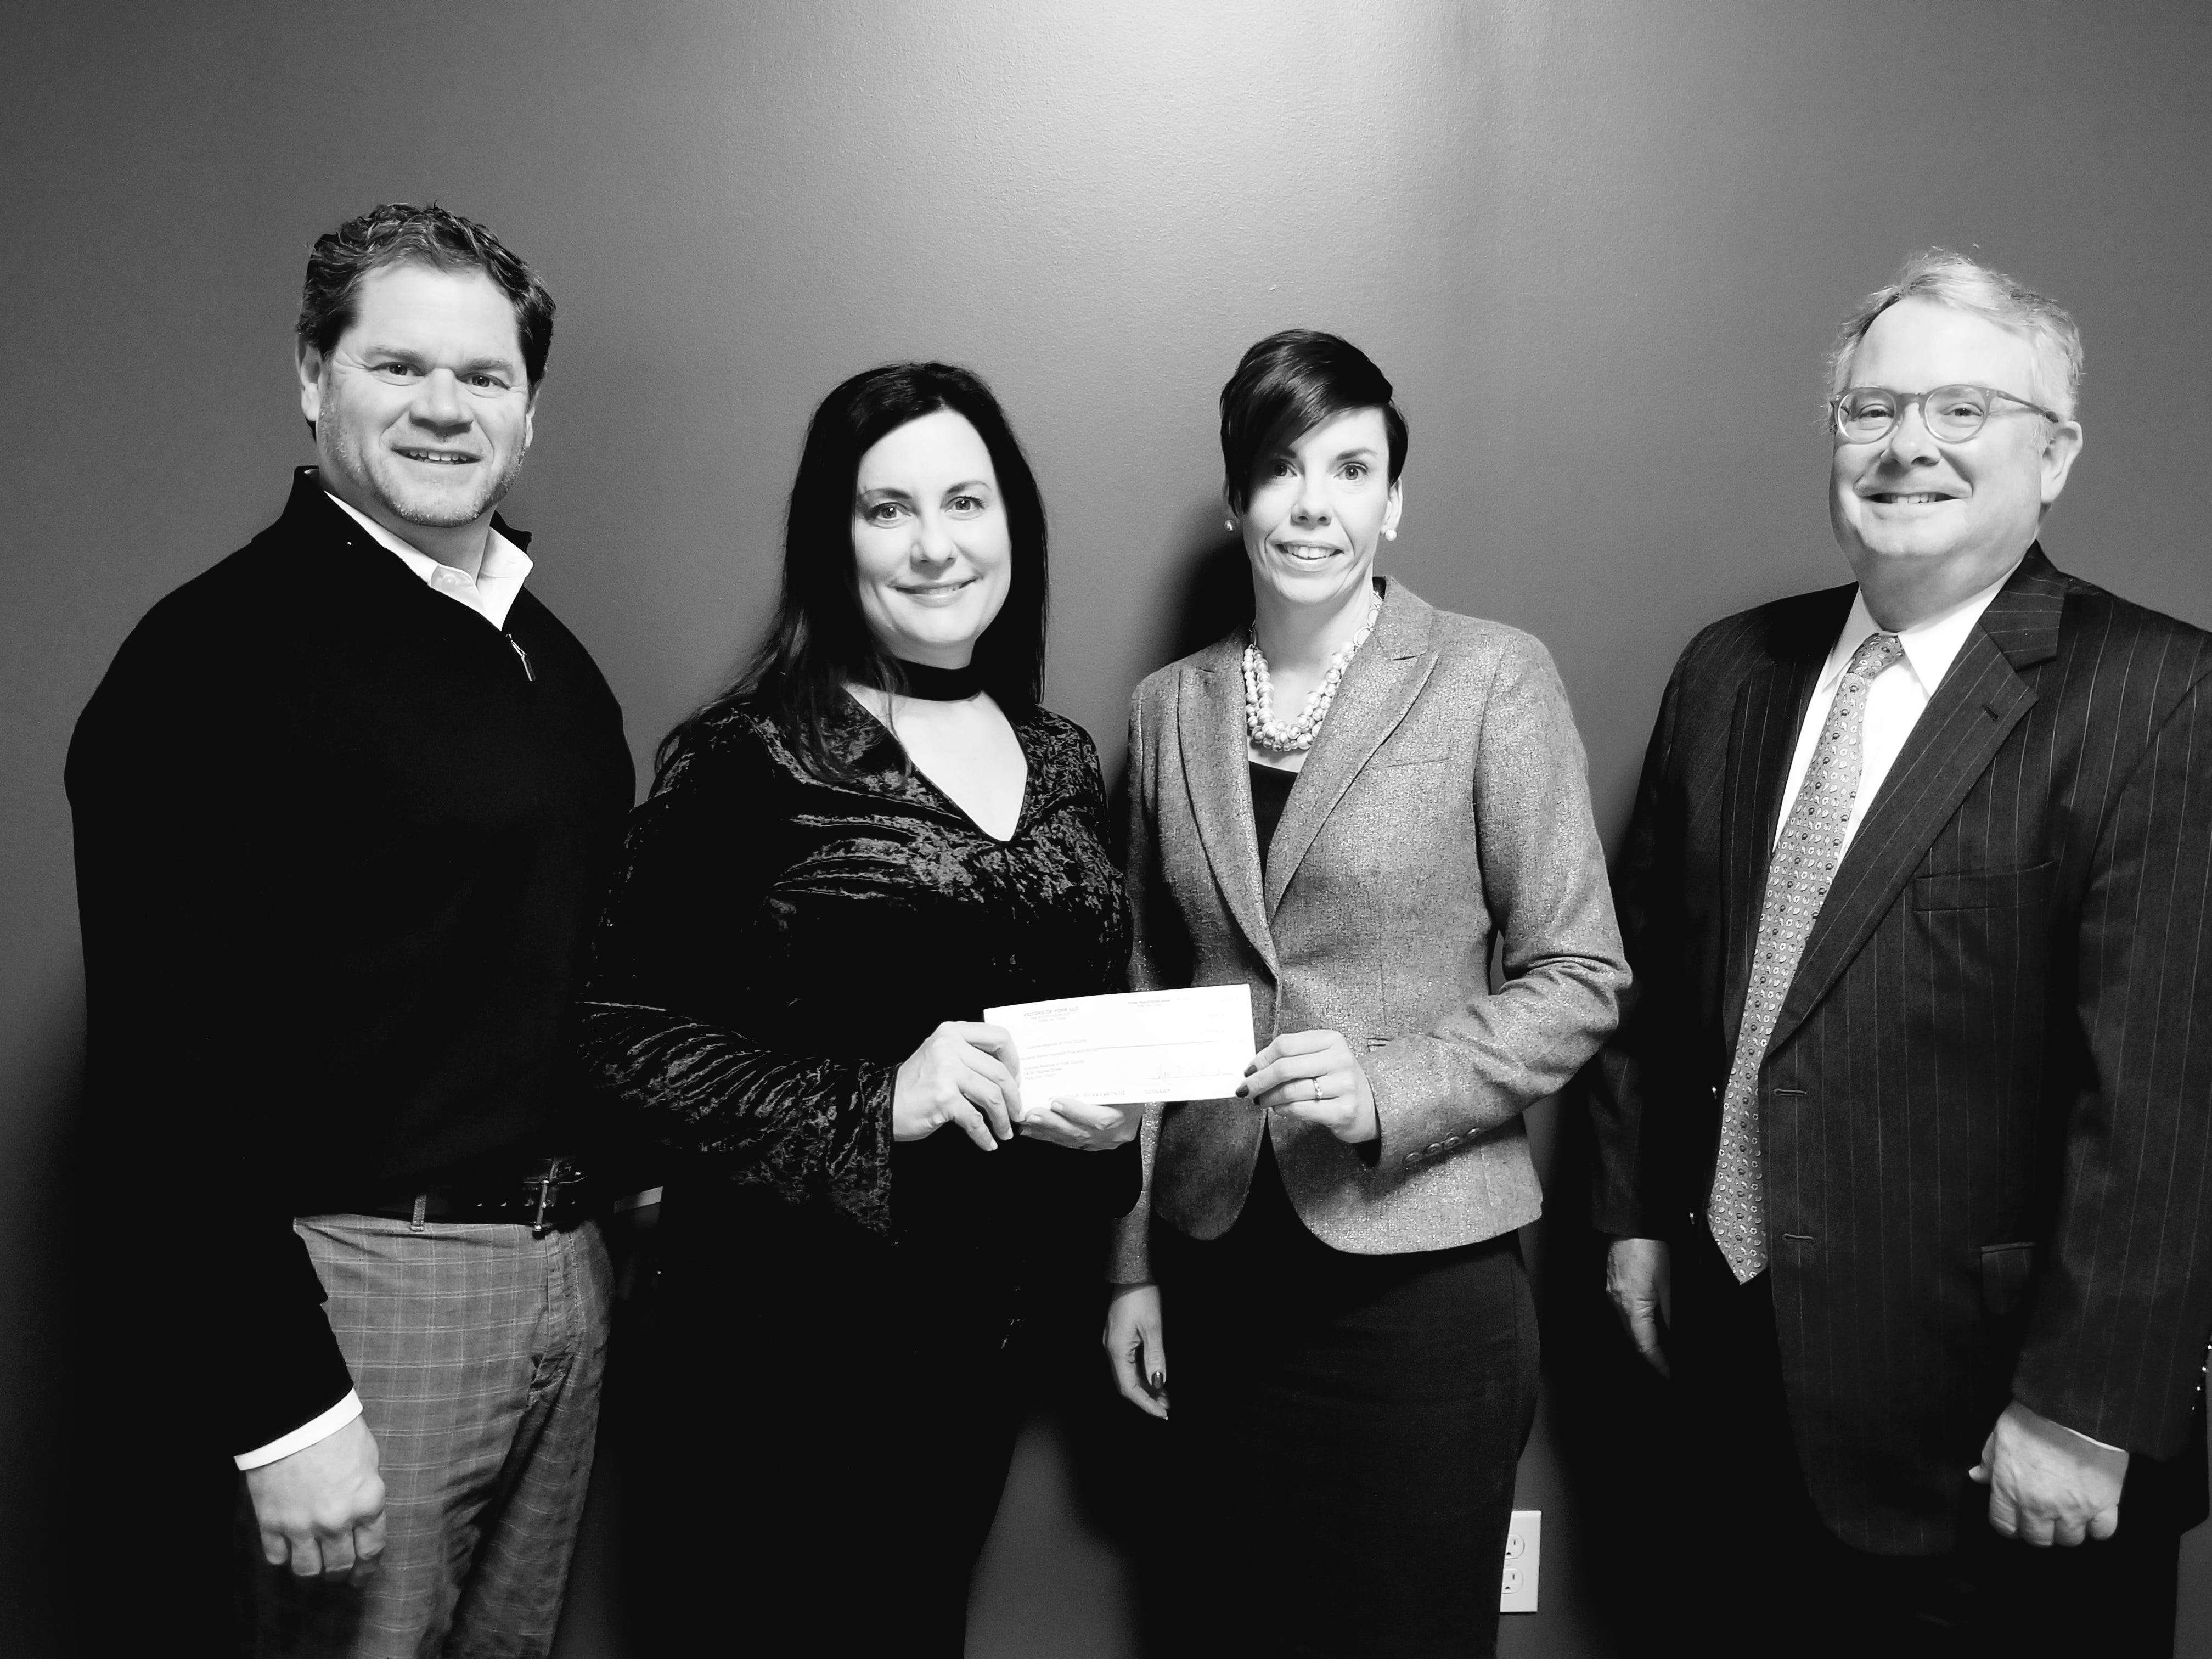 Victor's Italian Restaurant of York has made a $1,705 contribution to the Cultural Alliance of York County's 2018 annual campaign, raising dollars to support artists and arts organizations that bring meaningful arts experiences to thousands of community members each year.  The dollars were raised through a percentage of holiday gift card sales at the restaurant. Pictured are, from left, Victor's owners Mark and Marie Sindicich who present a check to Cultural Alliance President Kelley Gibson and Cultural Alliance Board Director James K. Fowler. submitted